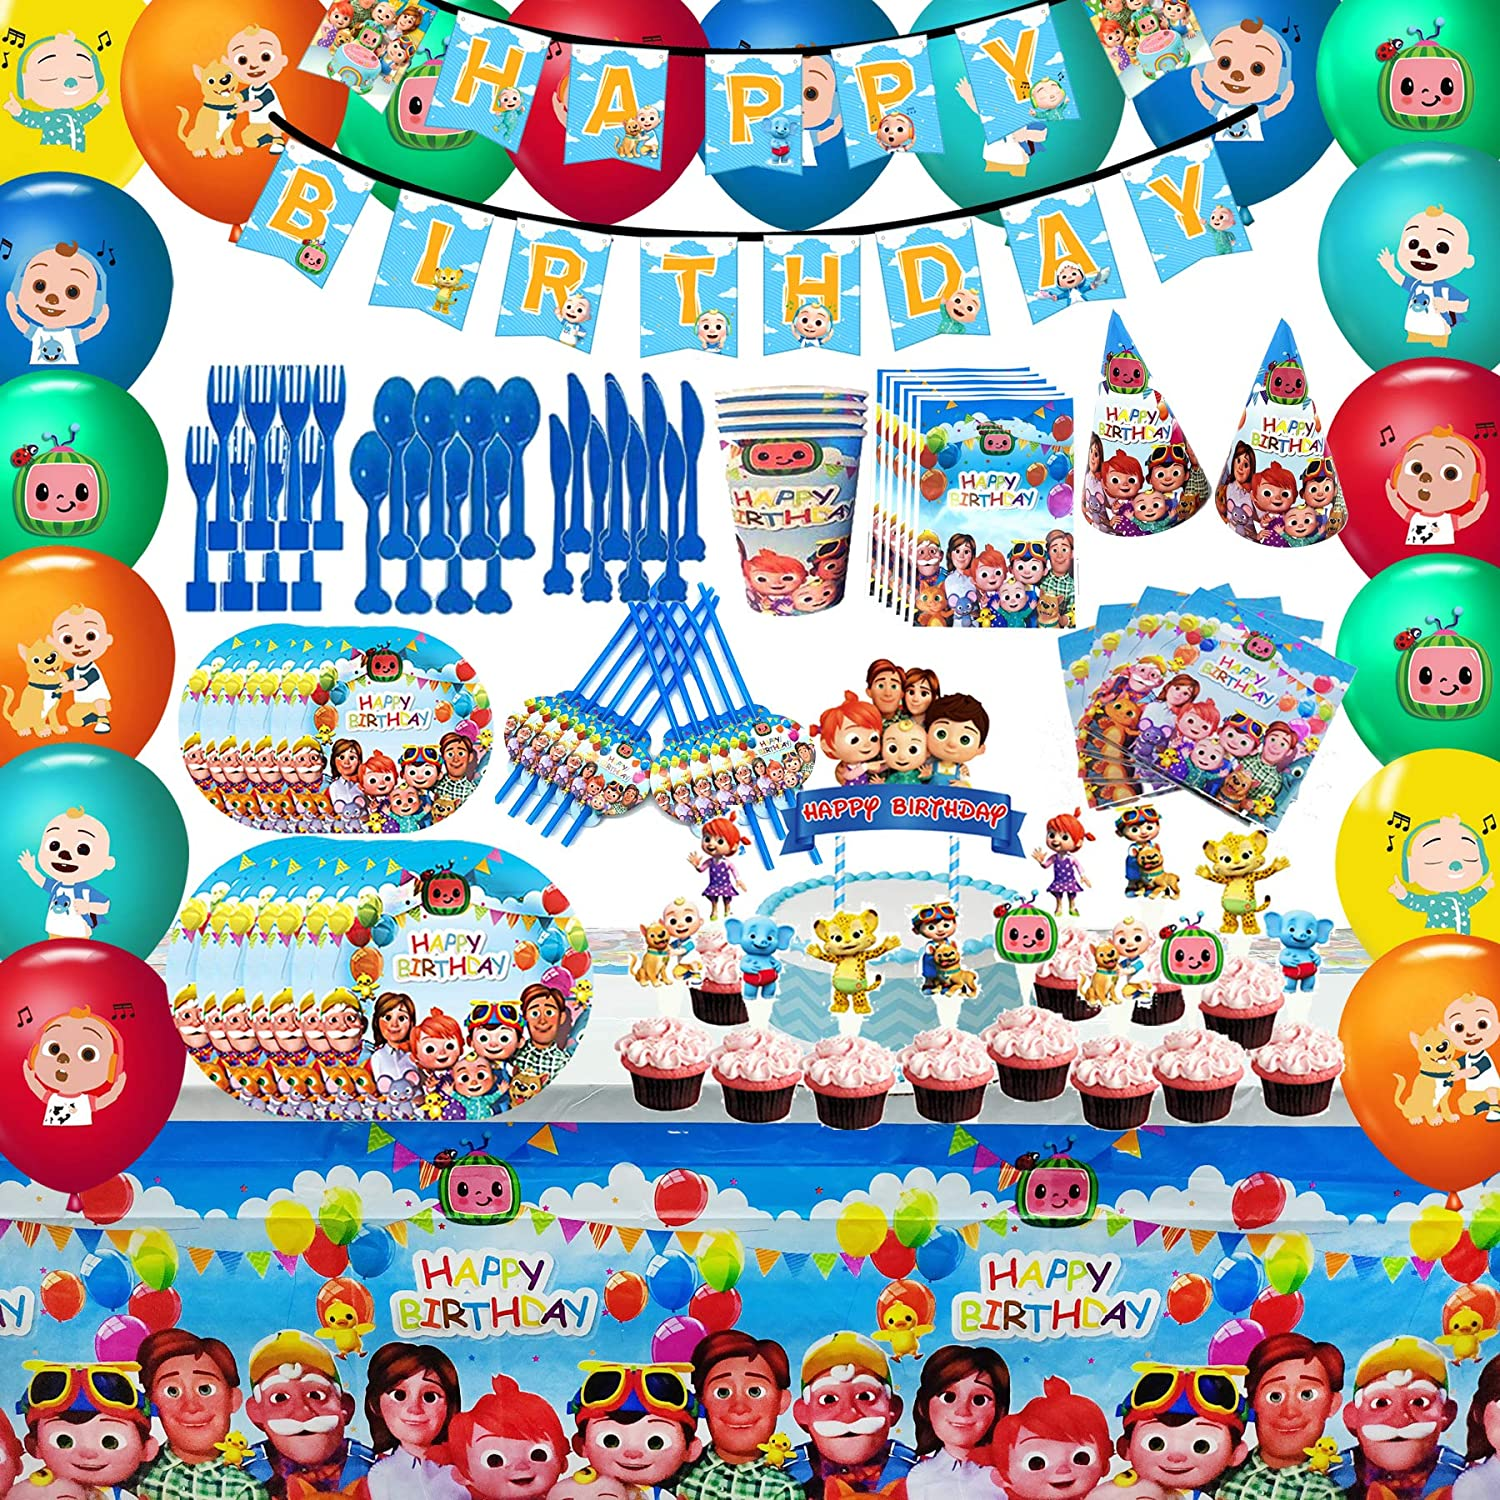 Cocomelon Party Favor Party Decorations Cocomelon Birthday Party Supplies, Flatware, Spoons, Fork, Knife, Plates, Cups, Table Covers, Banner, Napkins, Cake Toppers, Balloons for Kids Boy